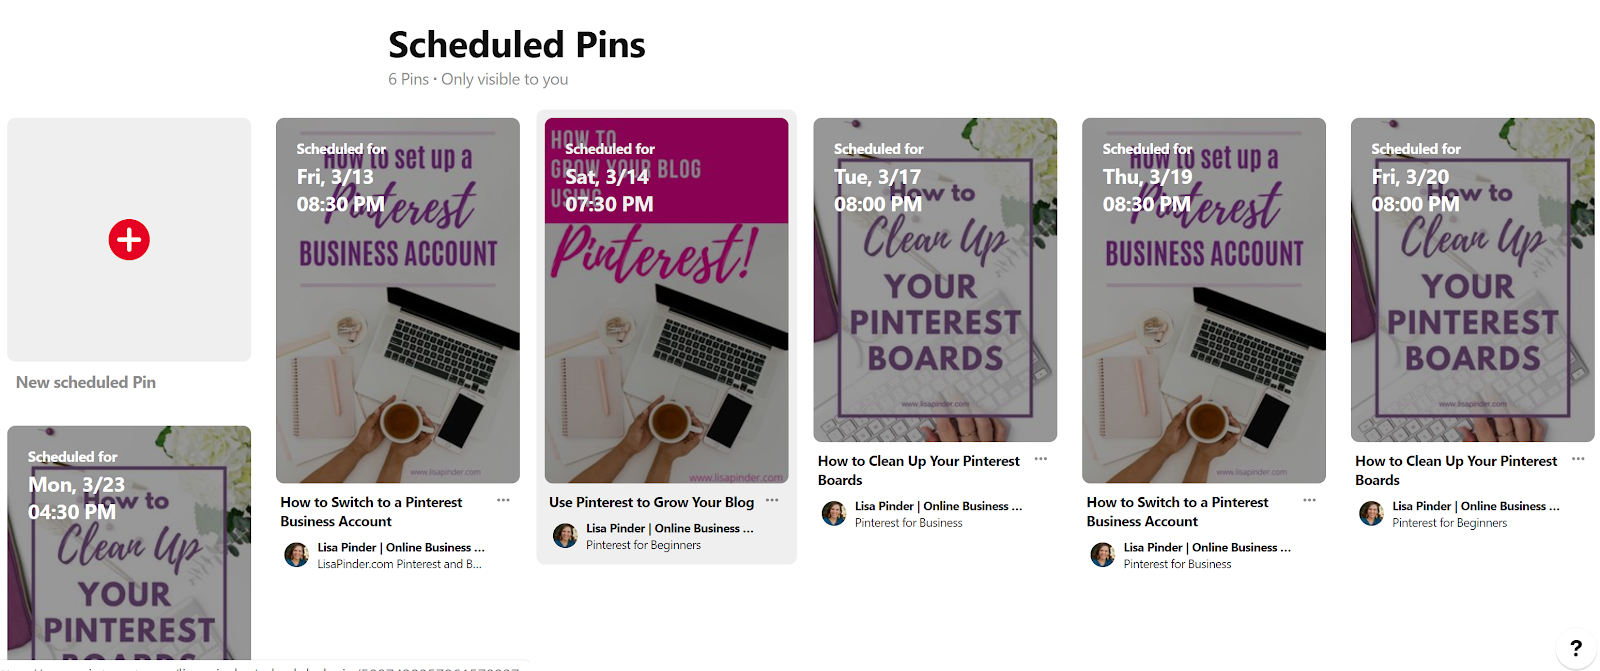 How to Schedule Pins on Pinterest. What the scheduled pins look like within Pinterest